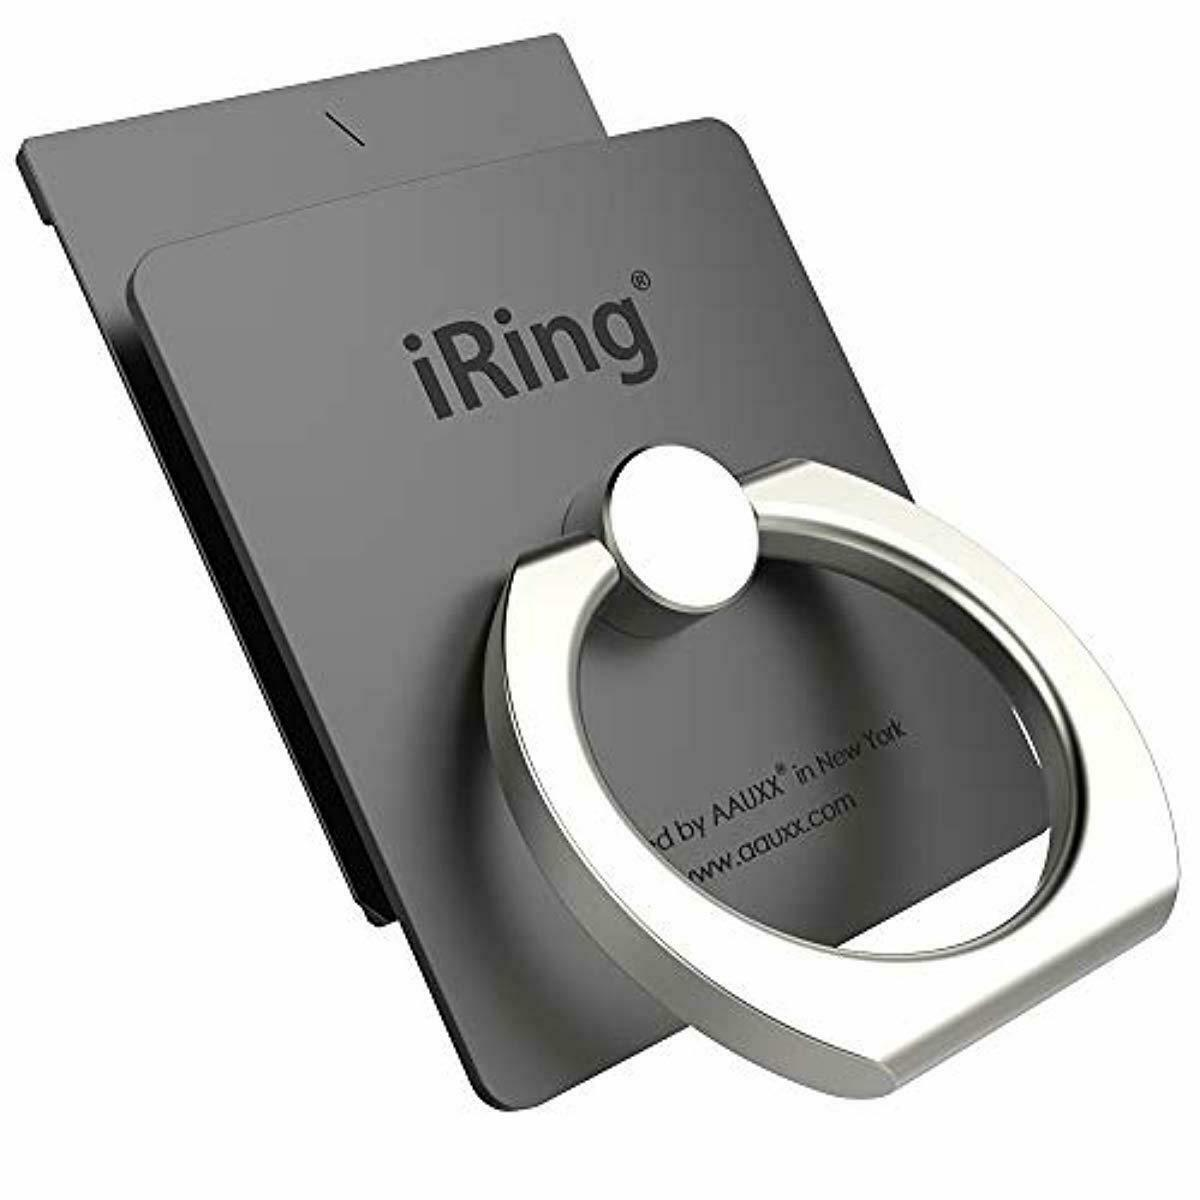 AAUXX iRing Link Finger Ring Holder Cell Phone Accessories. Removable Plate  Enab | eBay